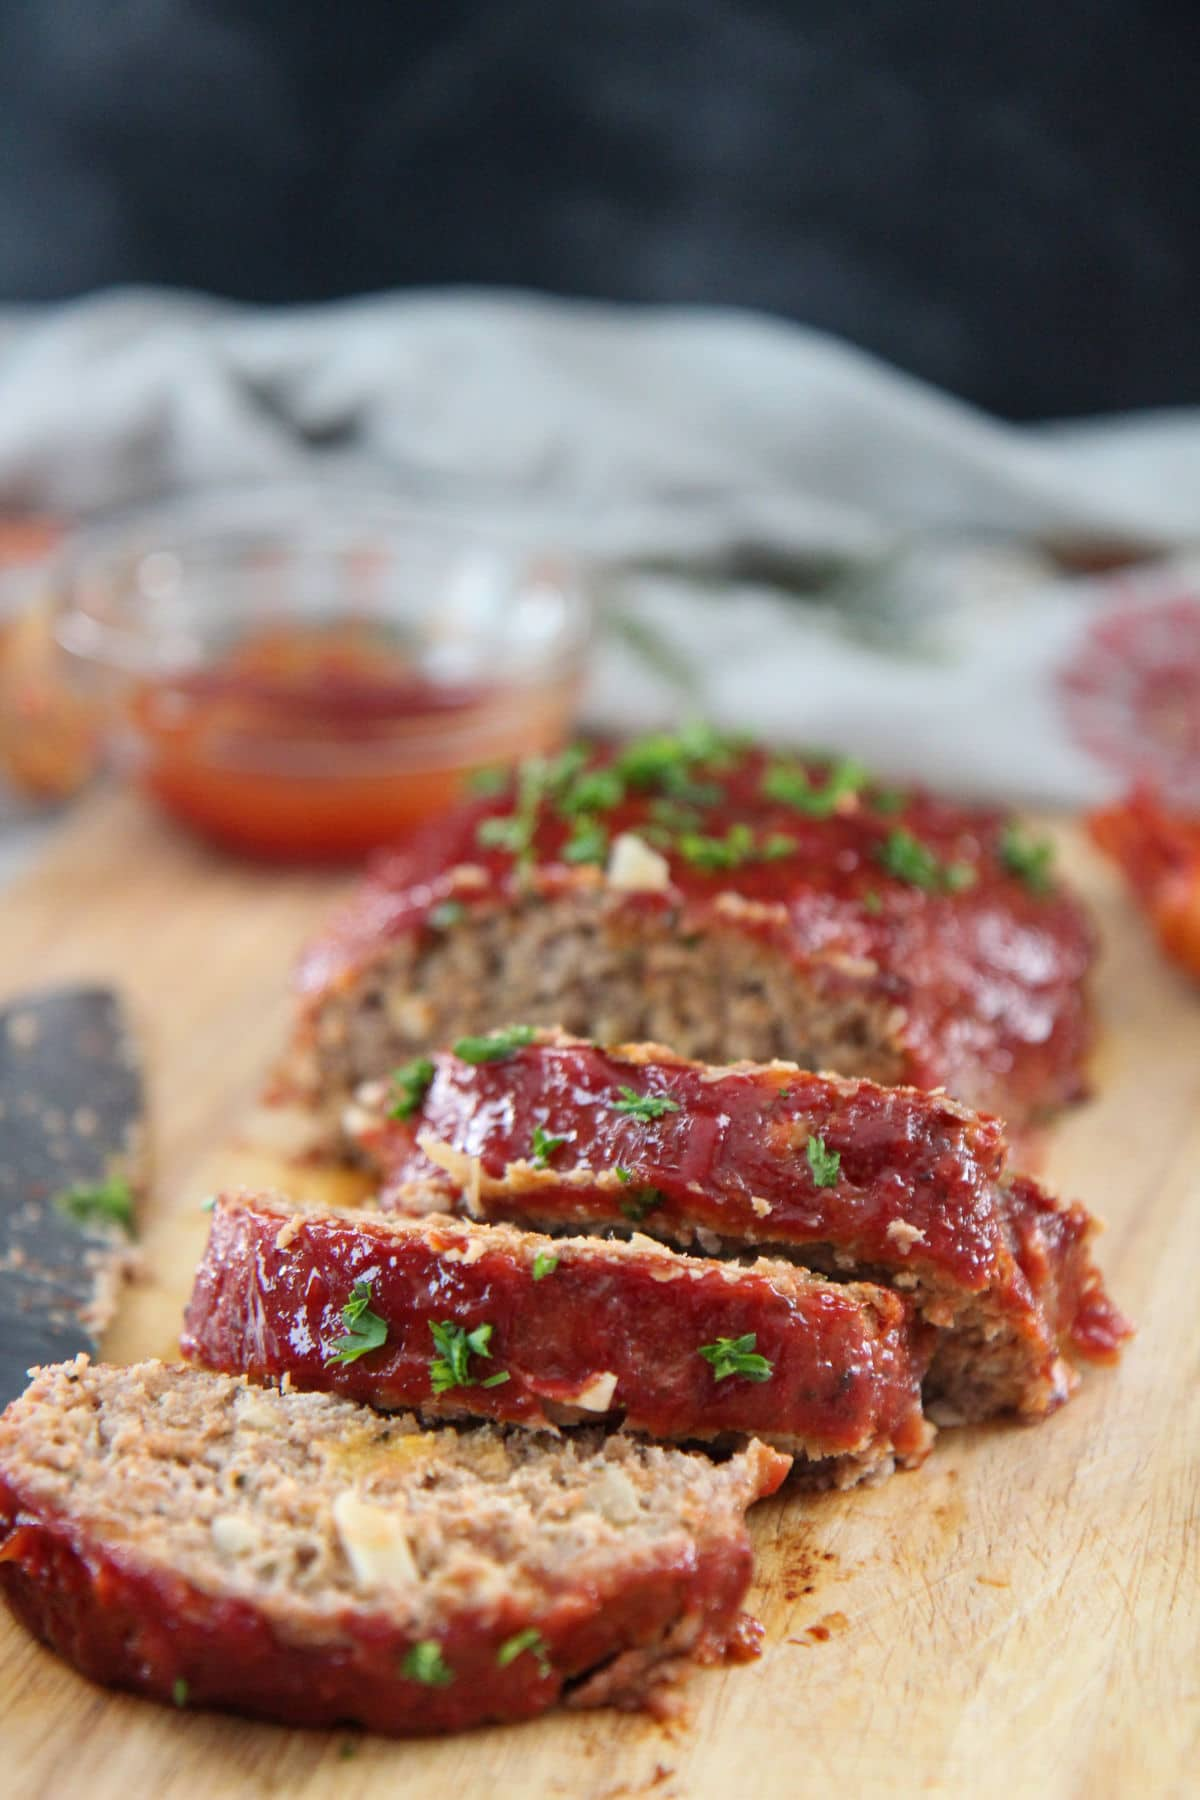 slices of turkey meatloaf on a wooden board with ketchup on the side